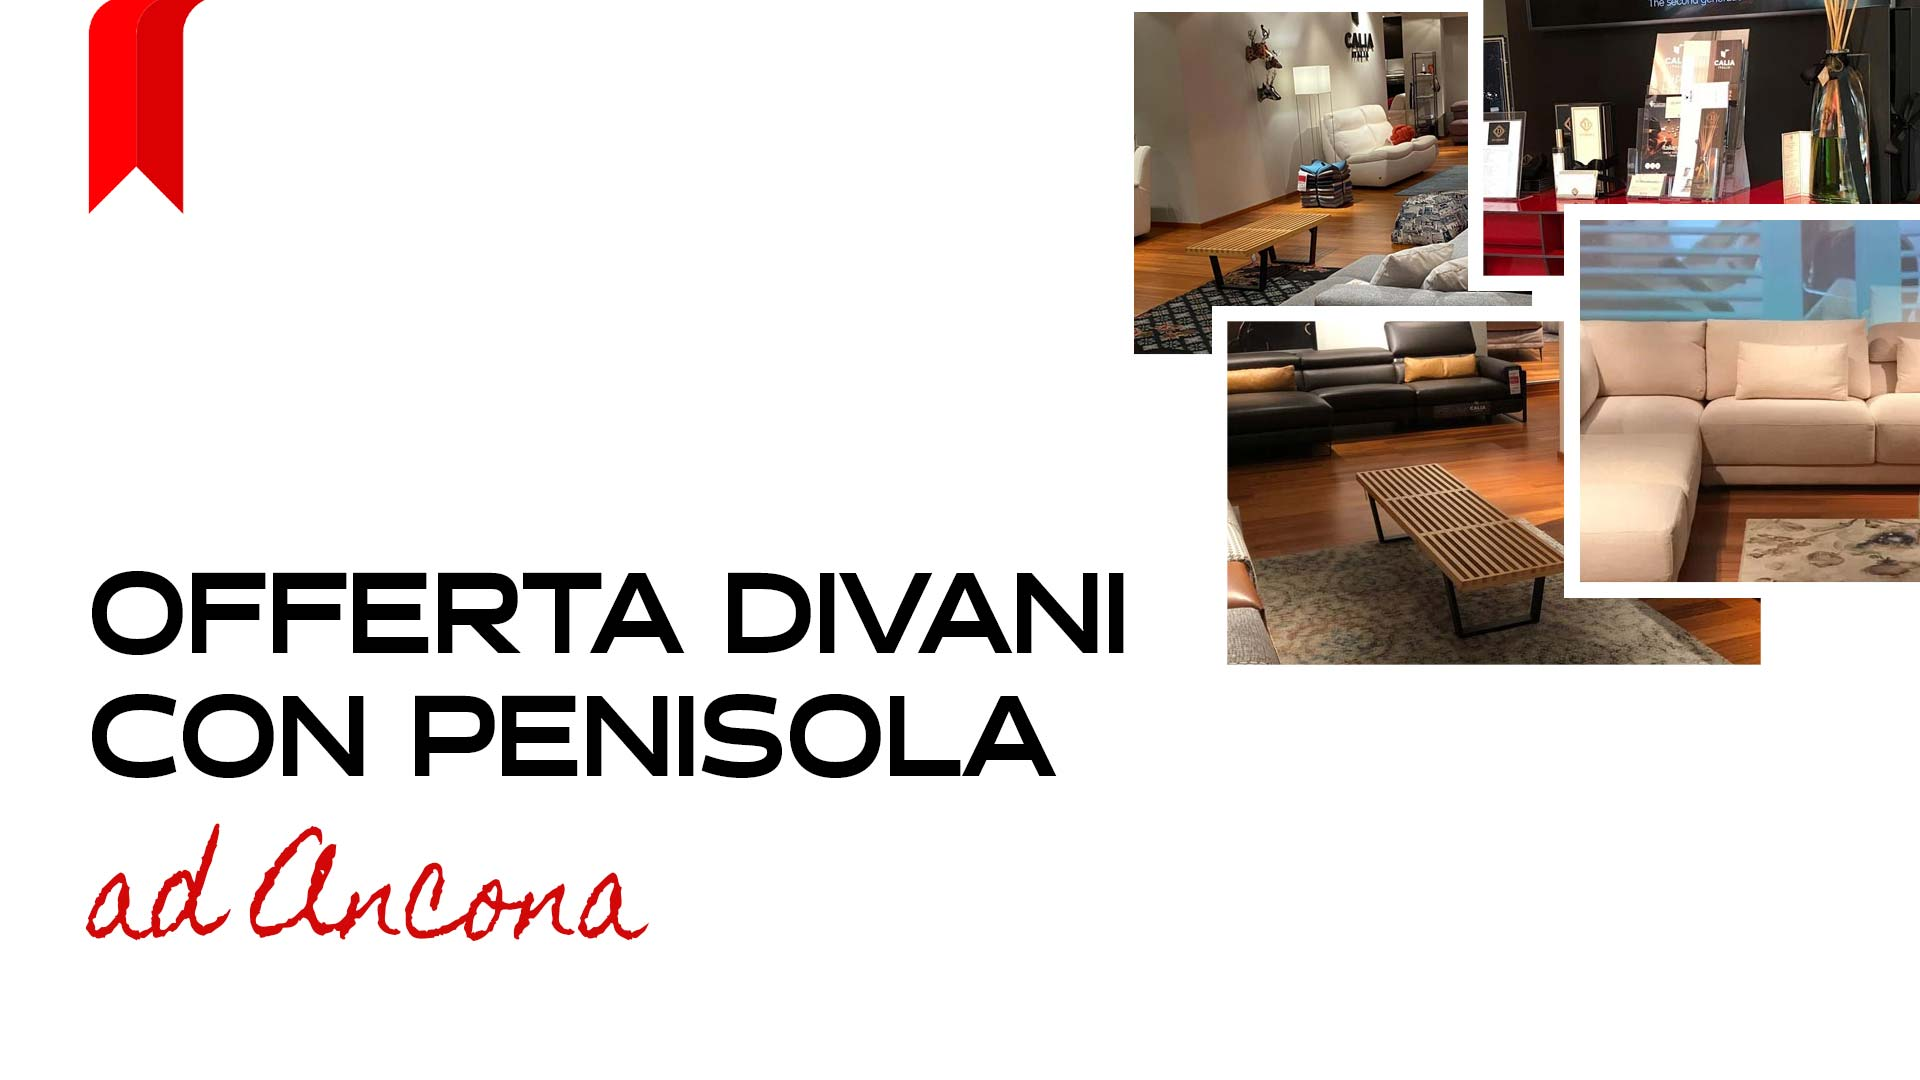 You are currently viewing Outlet Divani con penisola in offerta ad Ancona